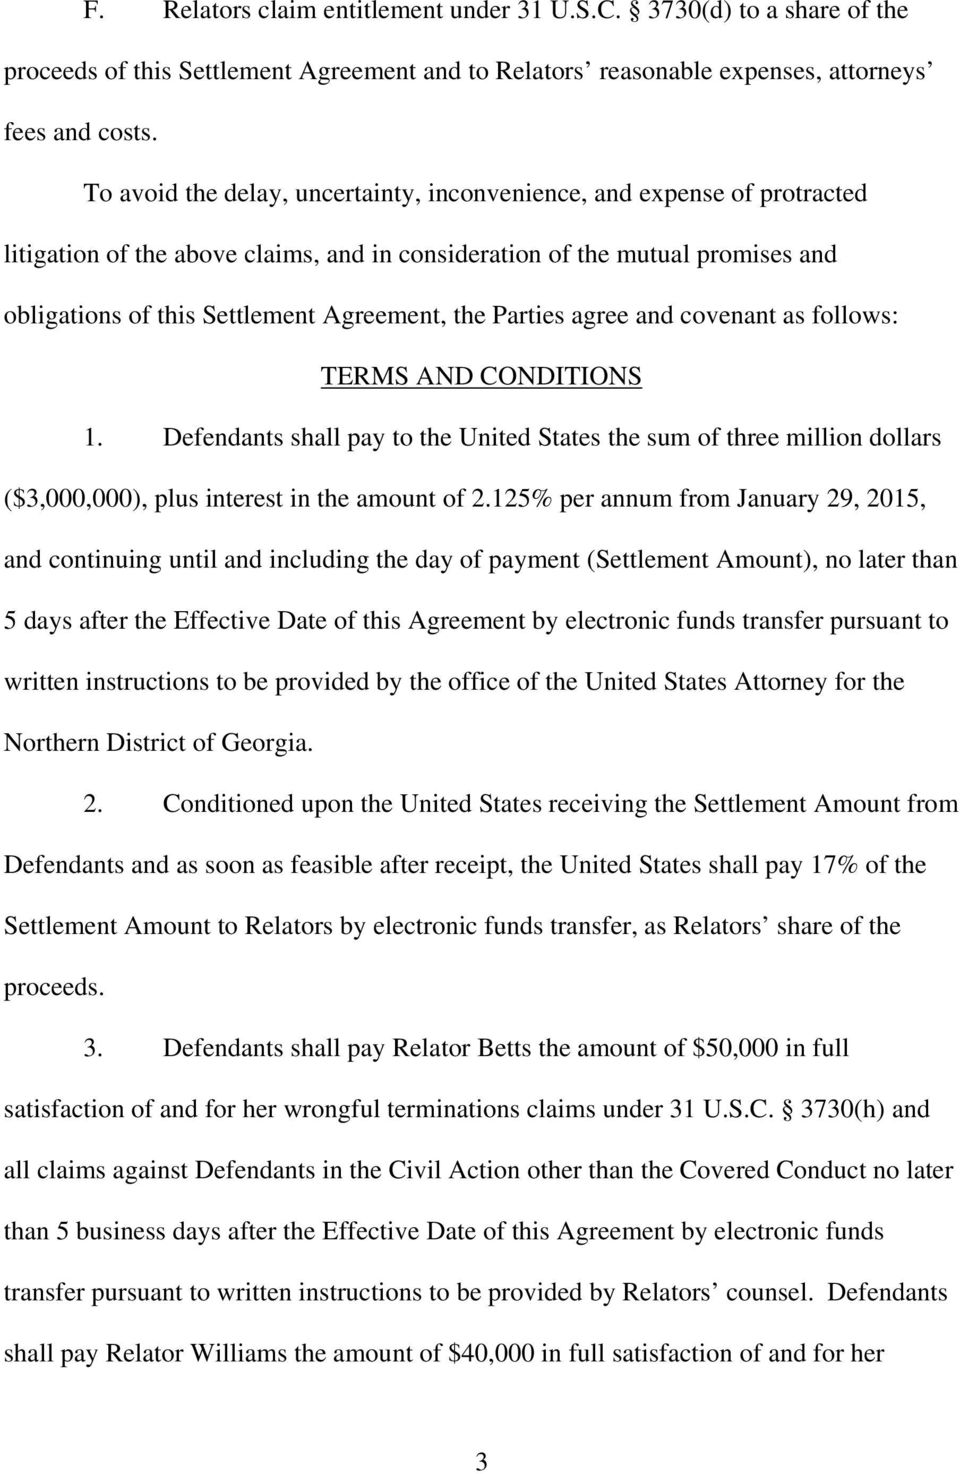 Parties agree and covenant as follows: TERMS AND CONDITIONS 1. Defendants shall pay to the United States the sum of three million dollars ($3,000,000), plus interest in the amount of 2.